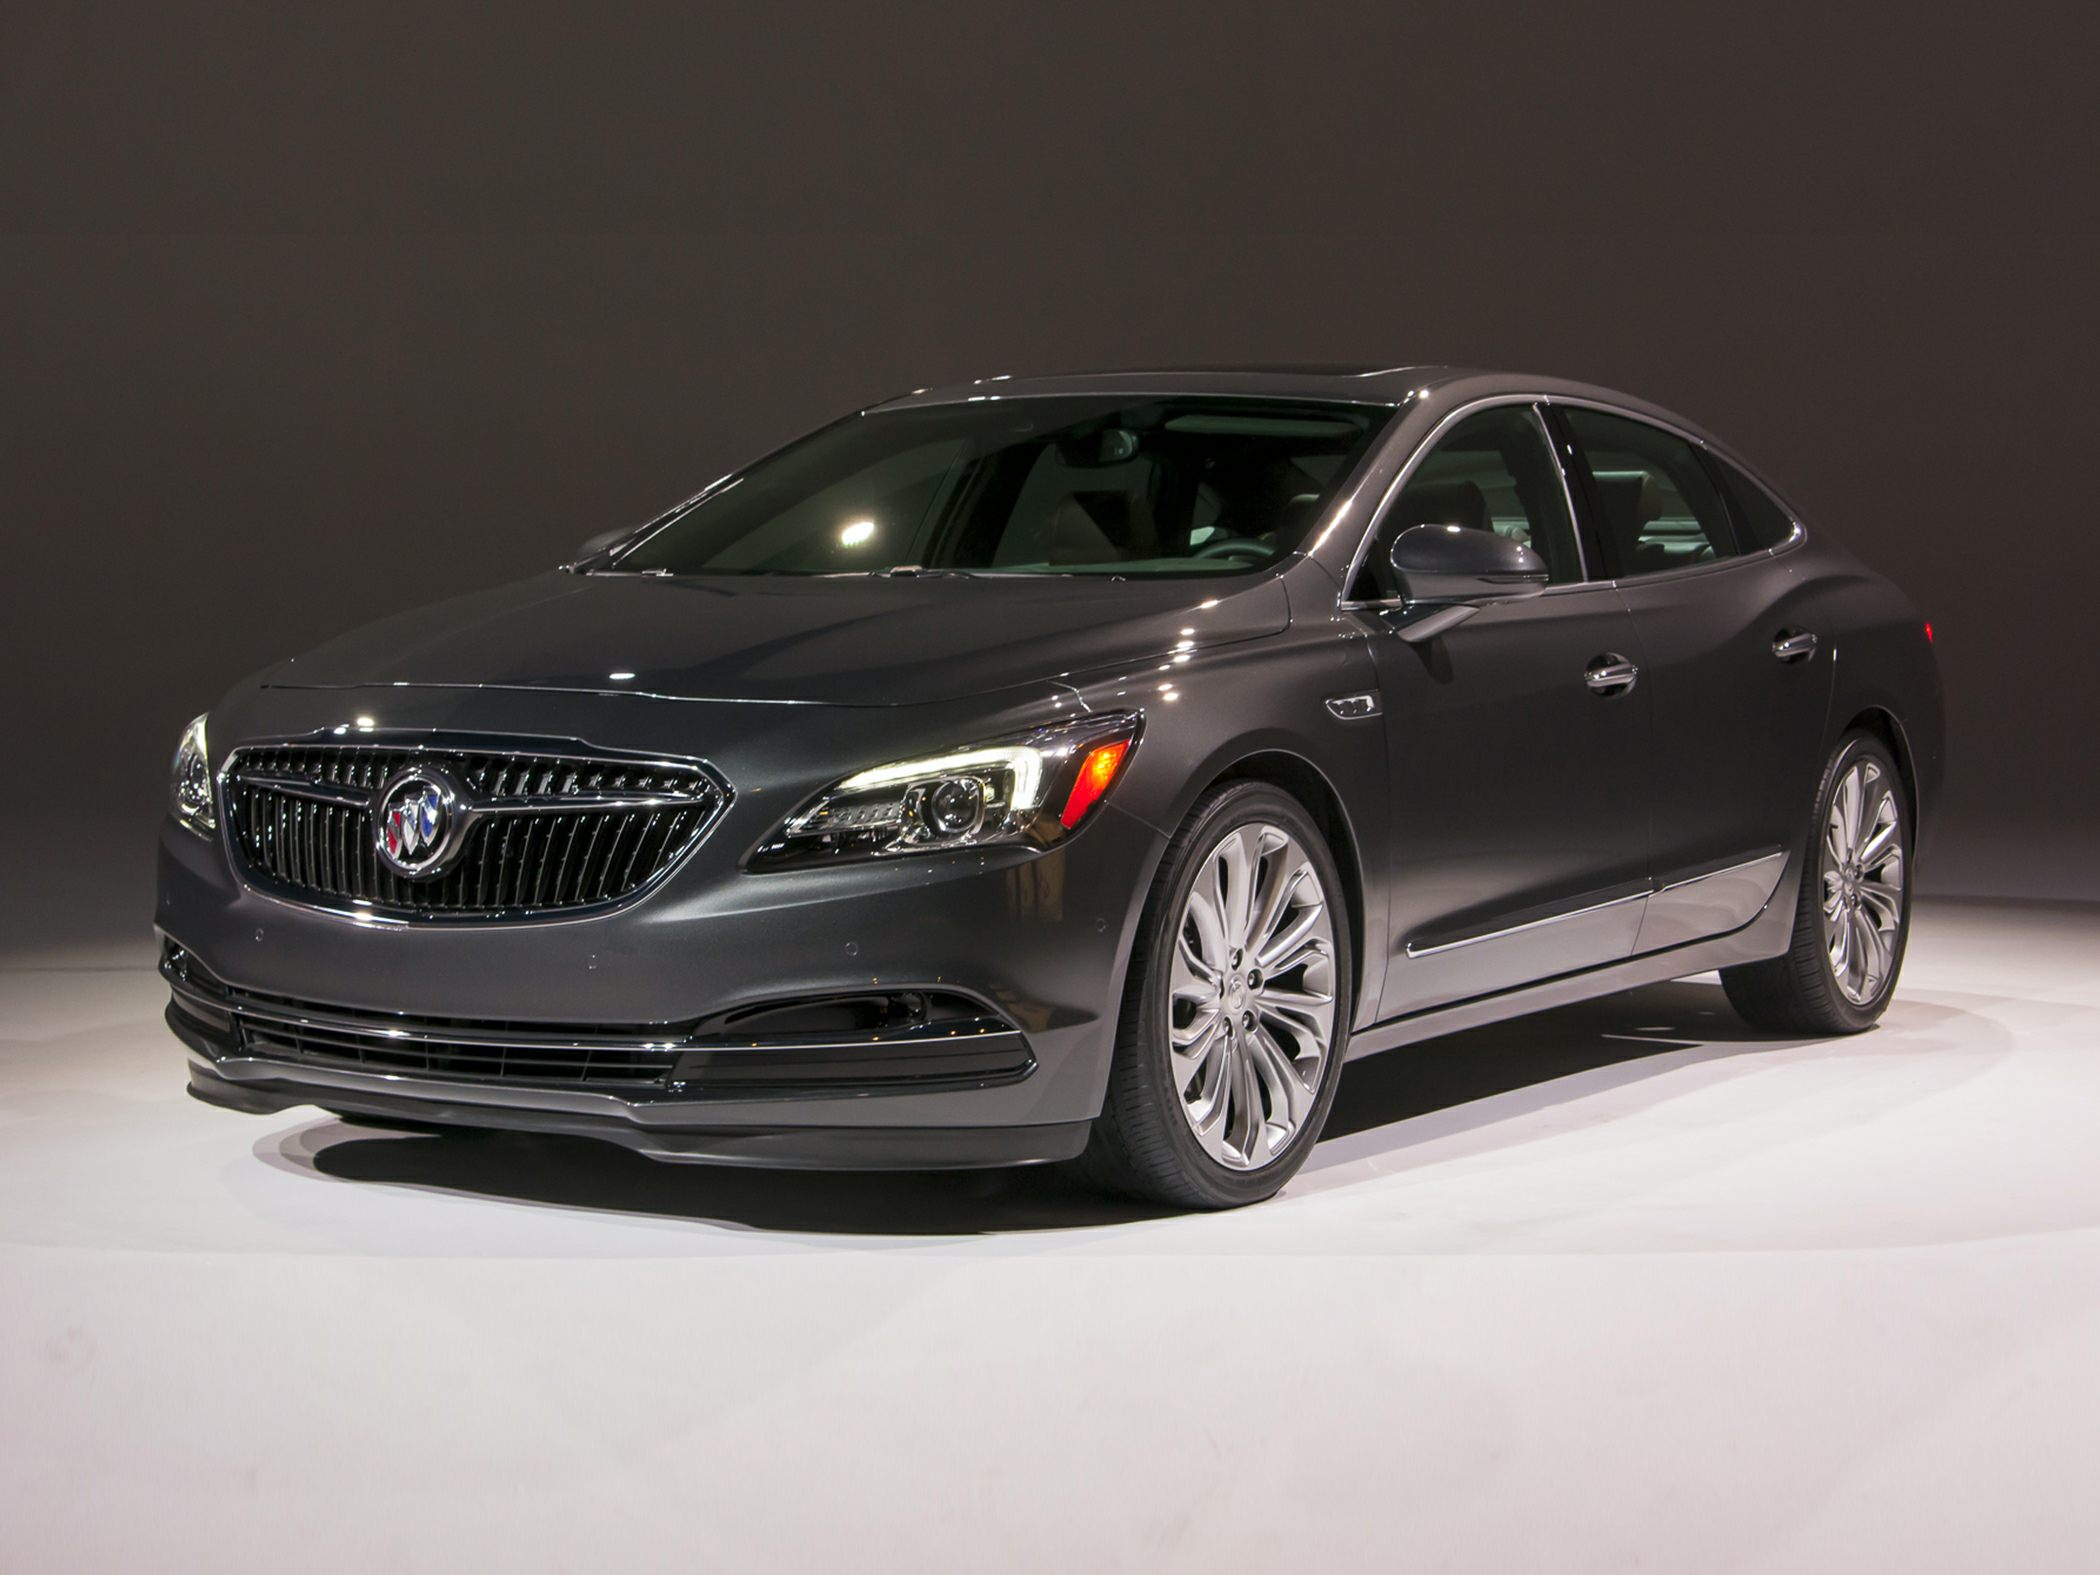 2017 buick lacrosse deals prices incentives leases overview carsdirect. Black Bedroom Furniture Sets. Home Design Ideas